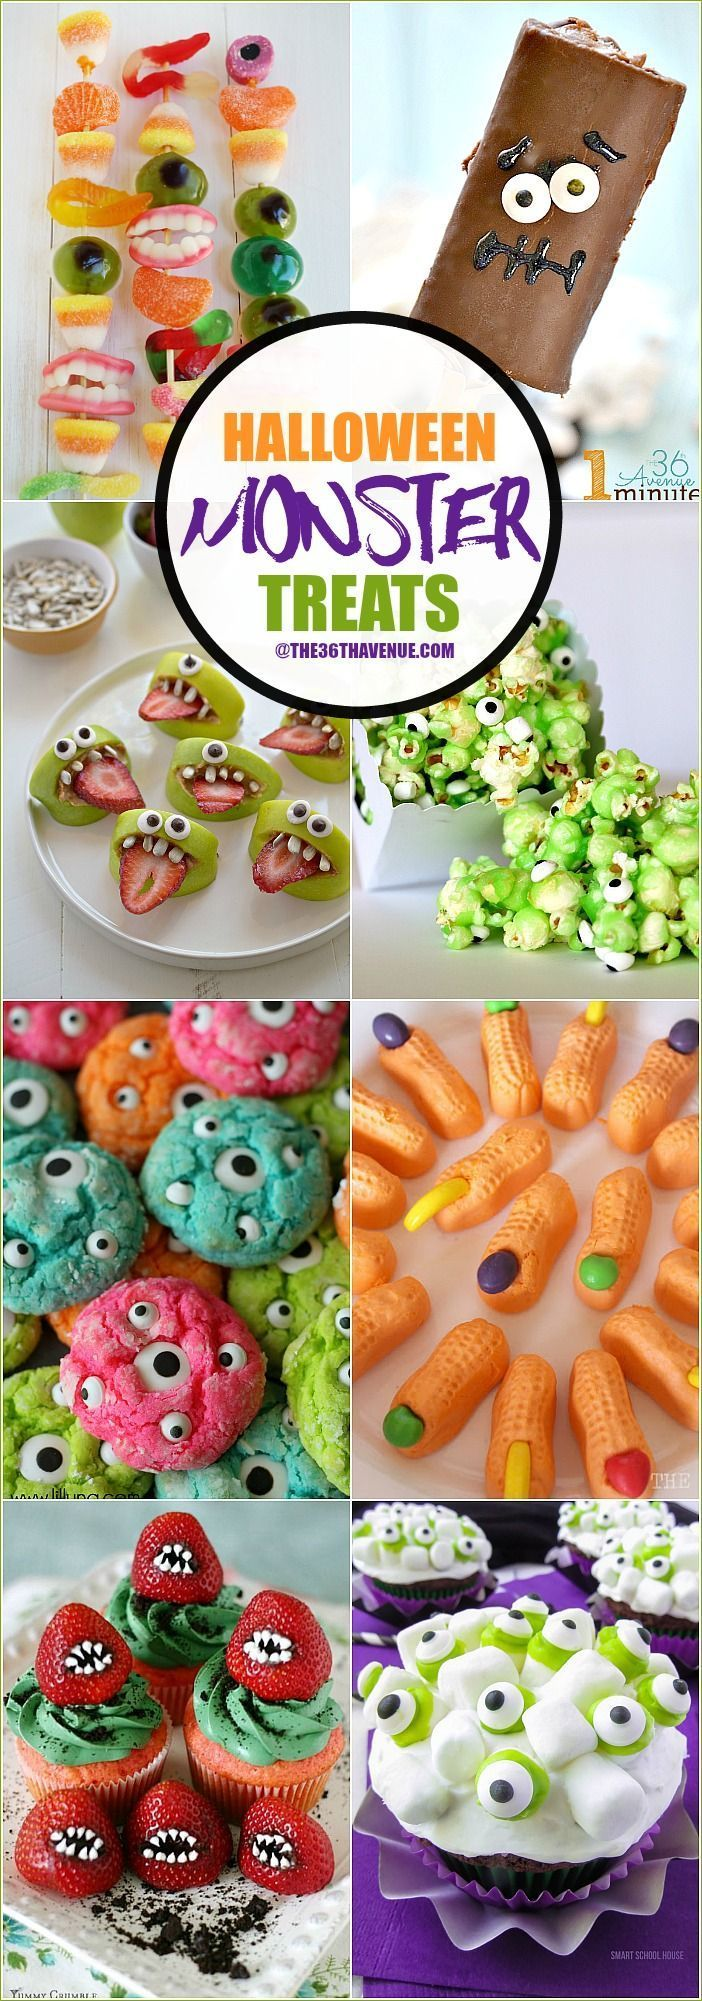 98 best images about Cooking With Kids on Pinterest | Kids ...